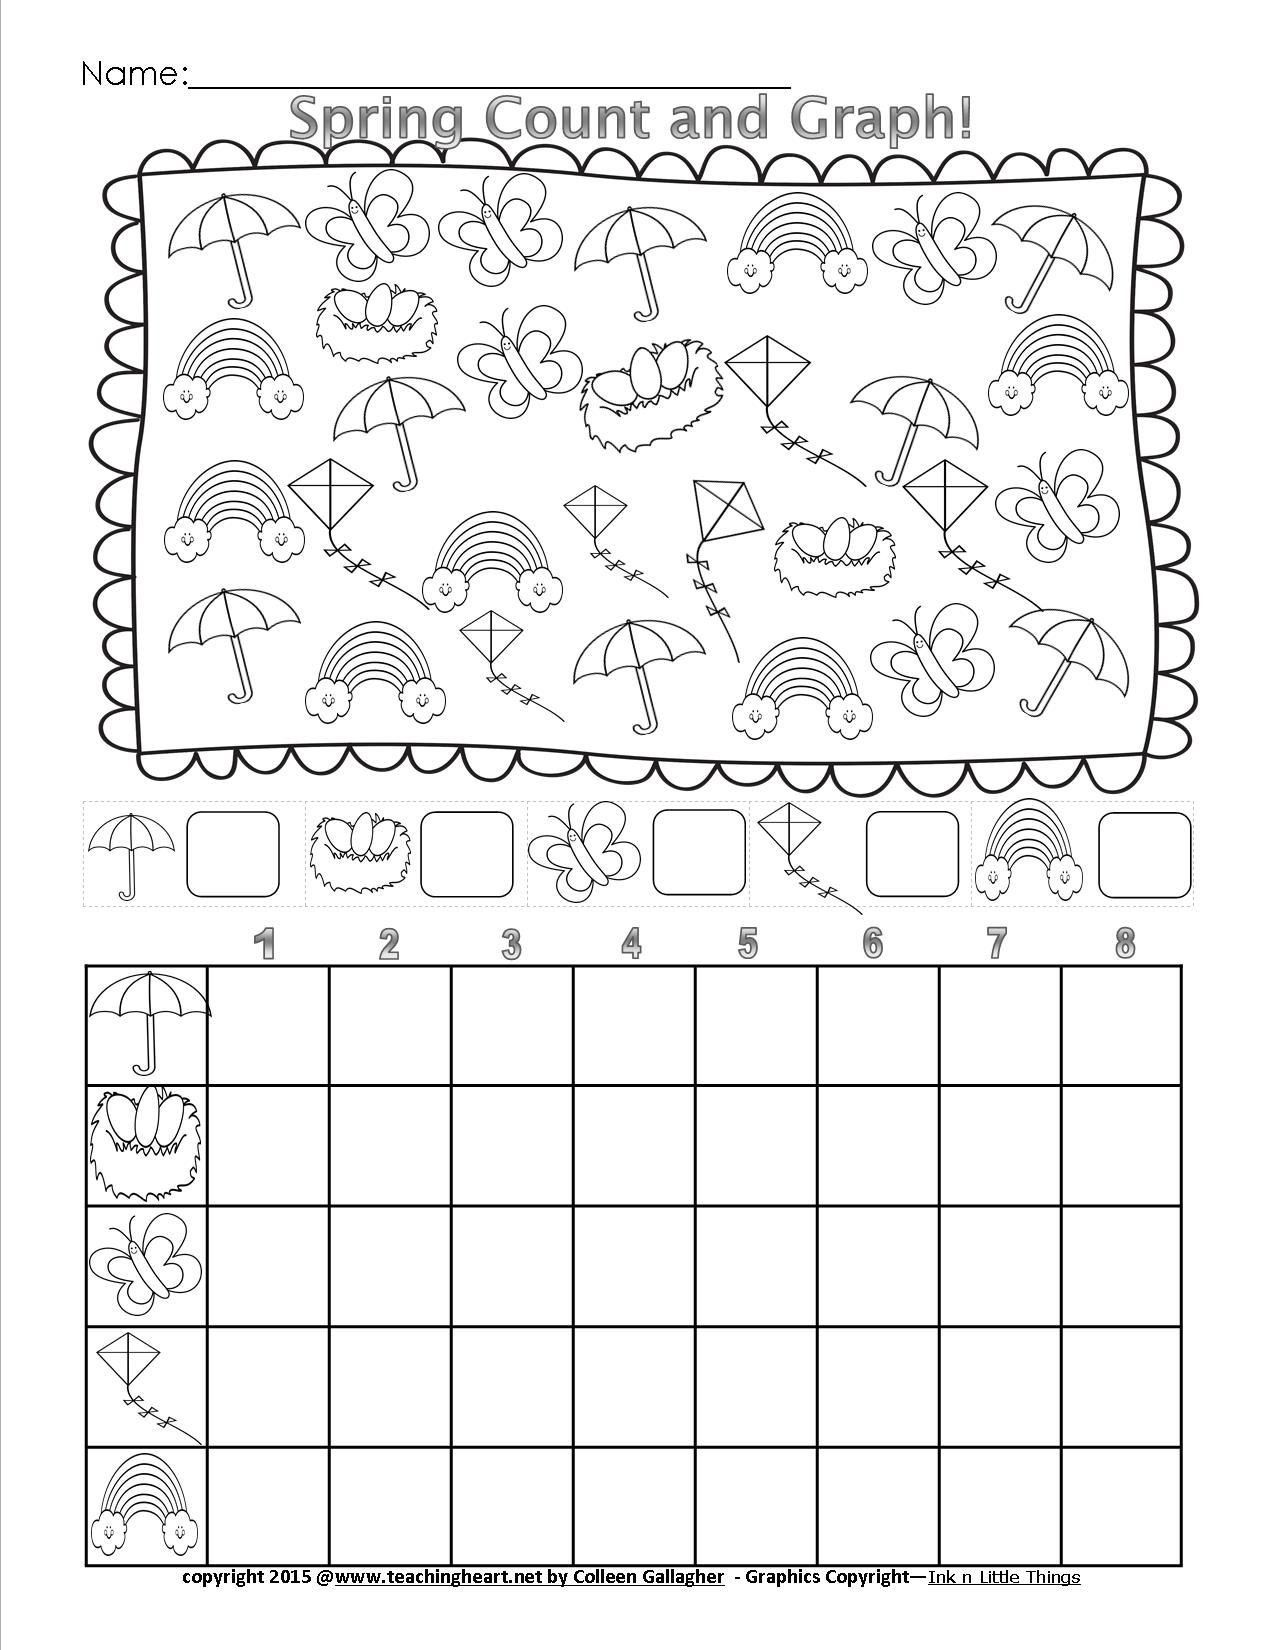 Spring Worksheets For Kindergarten Spring Count And Graph